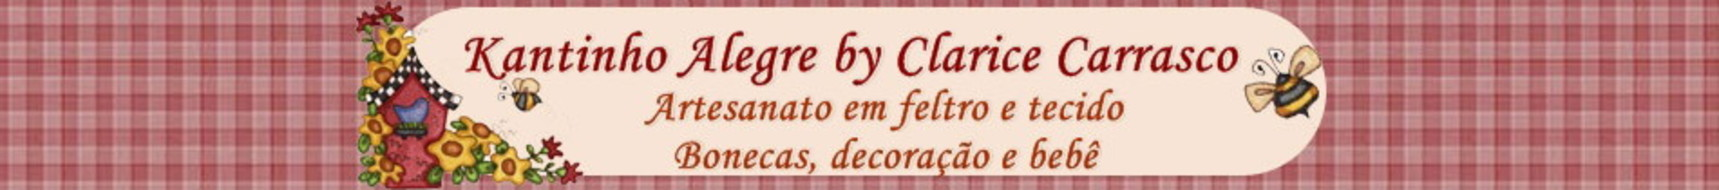 Kantinho Alegre by Clarice R. Carrasco